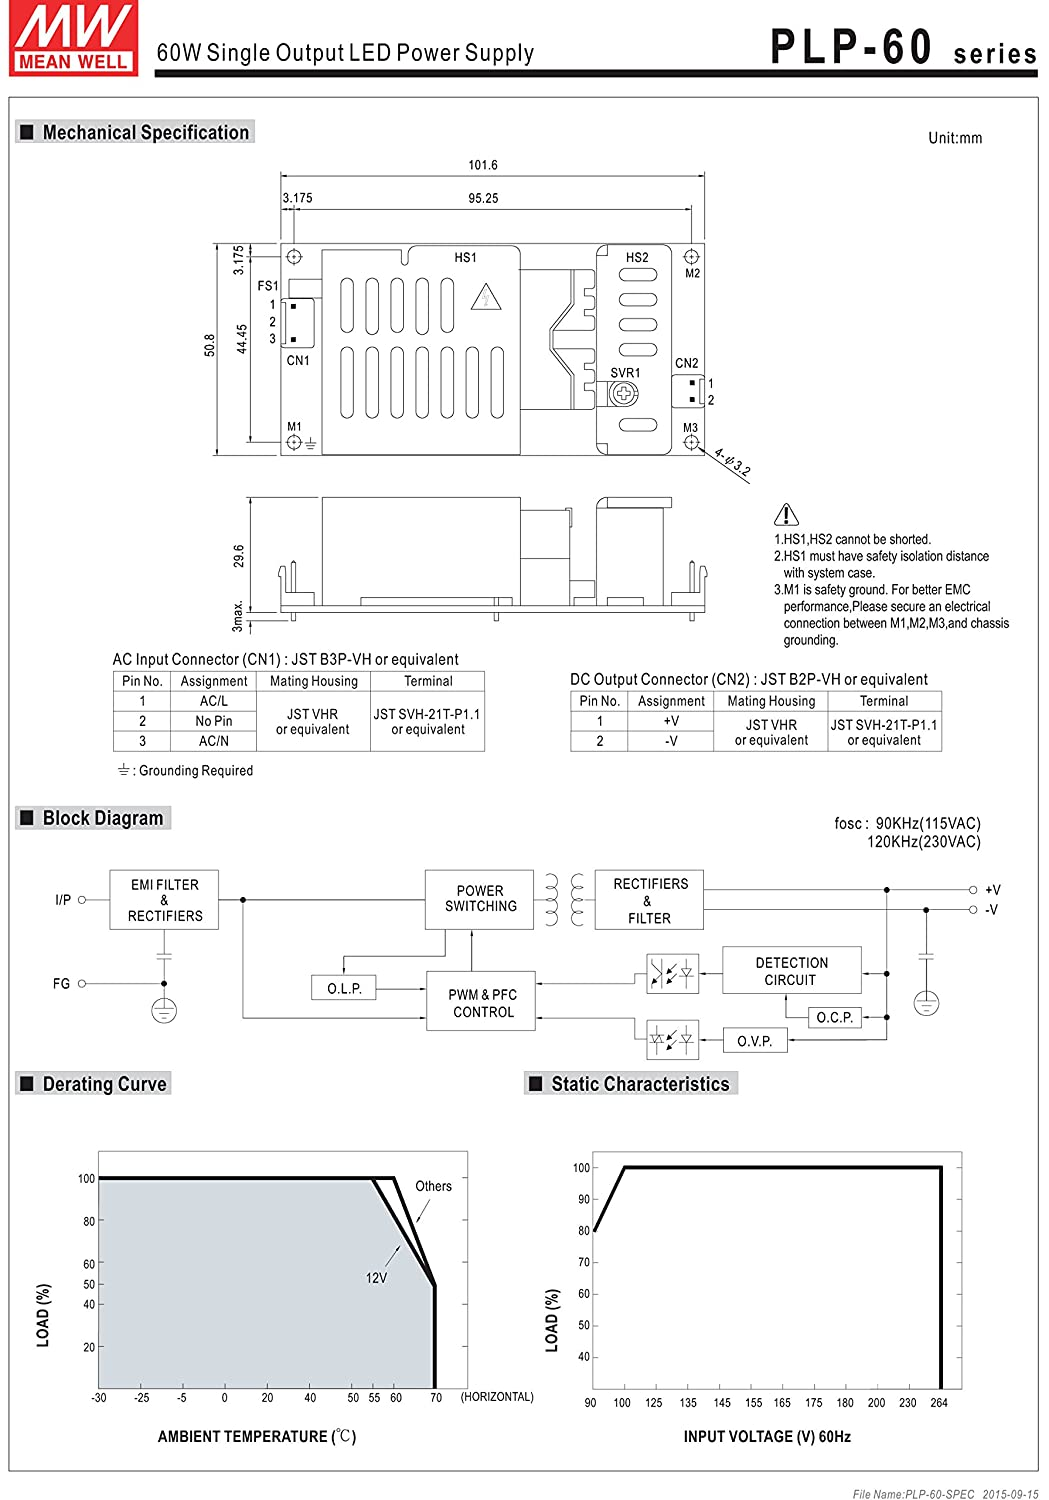 Mw Mean Well Plp 60 48 48v 125a 60w Single Output Led M1 M2 Wiring Diagram Power Supply Home Audio Theater